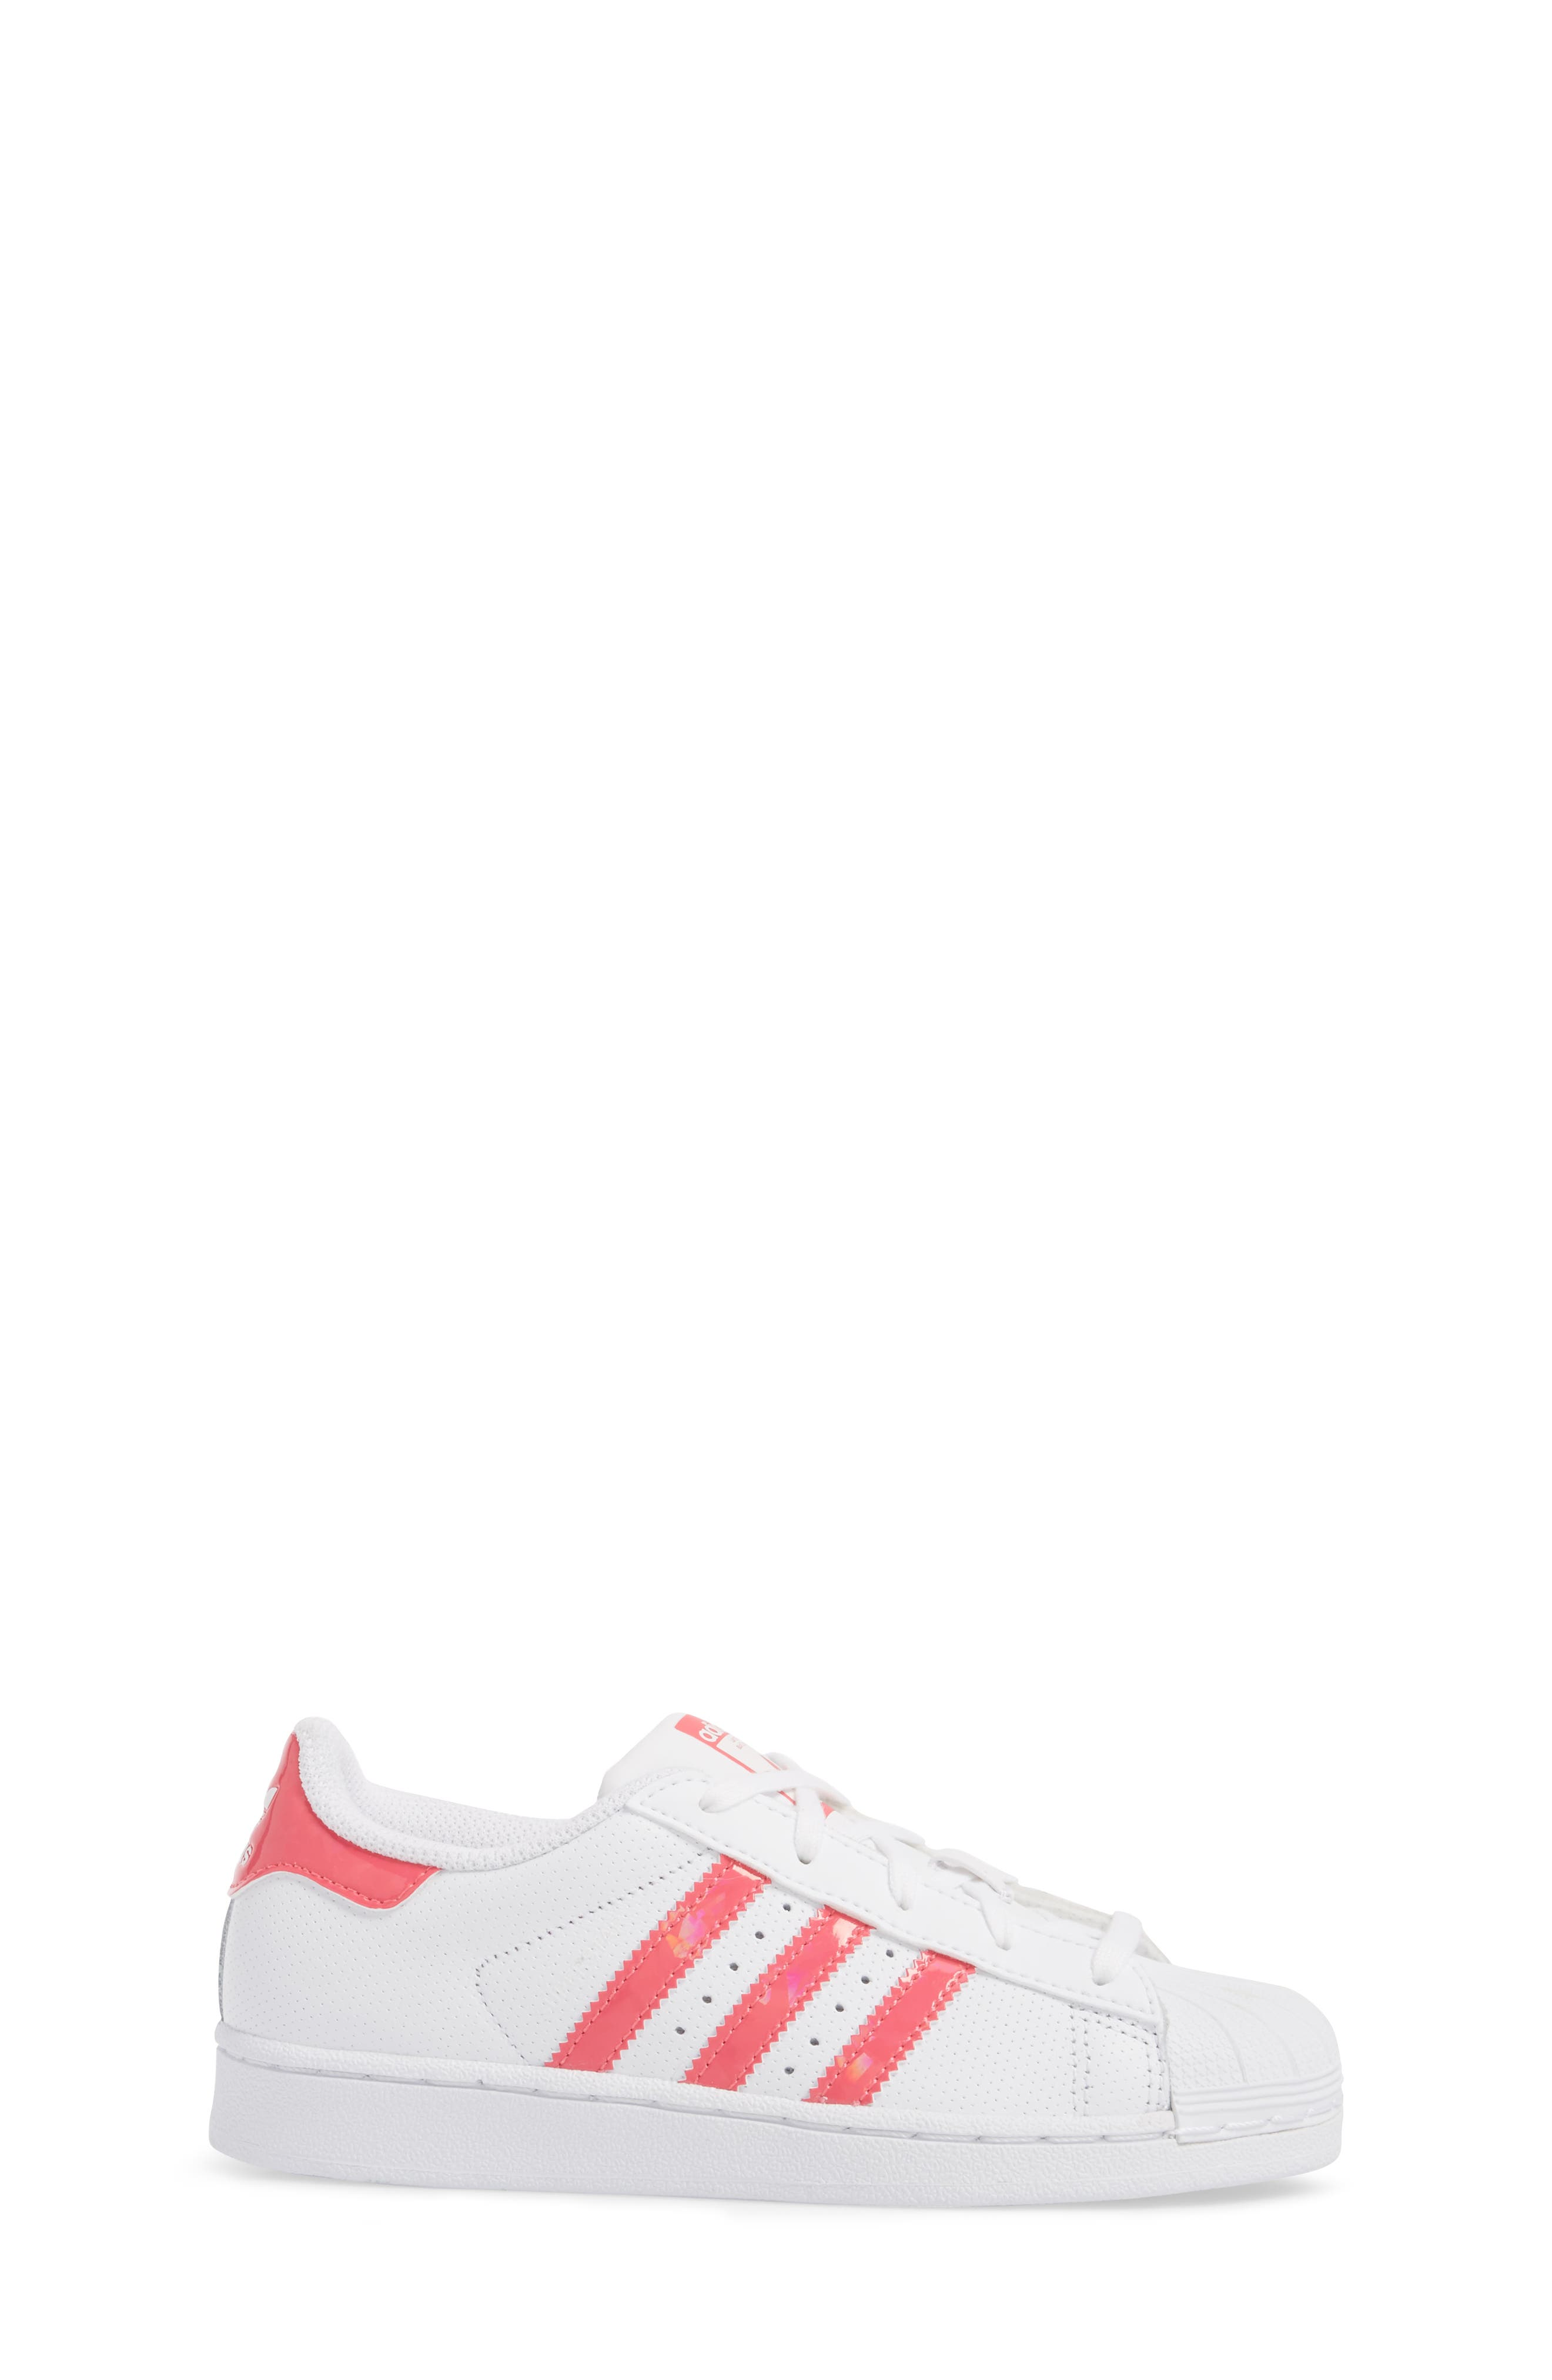 Superstar Perforated Low Top Sneaker,                             Alternate thumbnail 3, color,